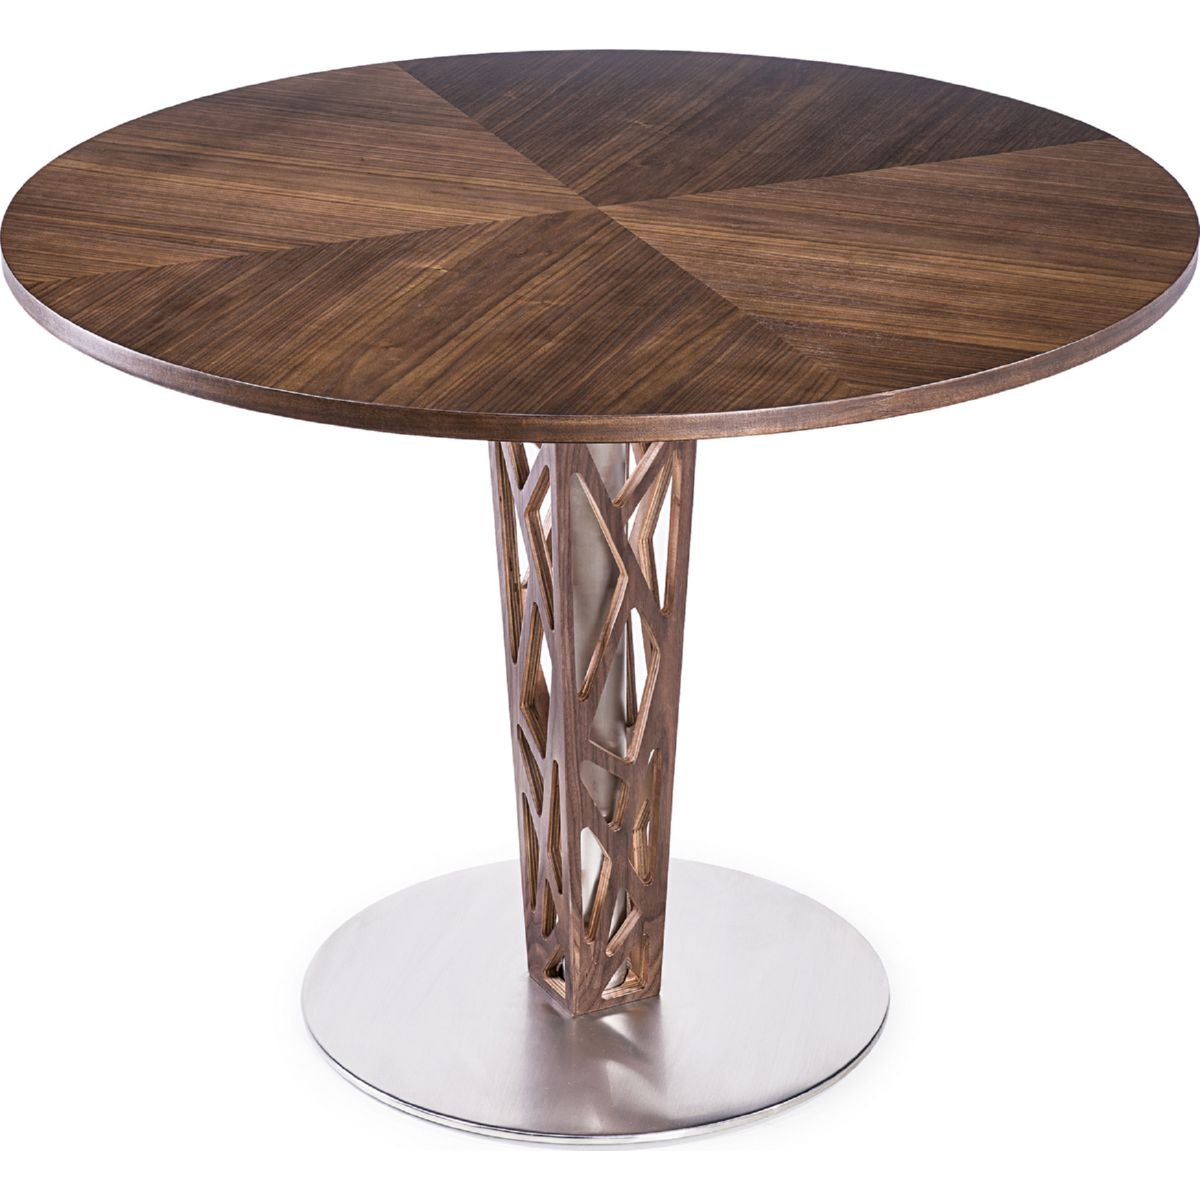 Dining Table In Walnut Veneer Brushed Stainless Steel W Walnut